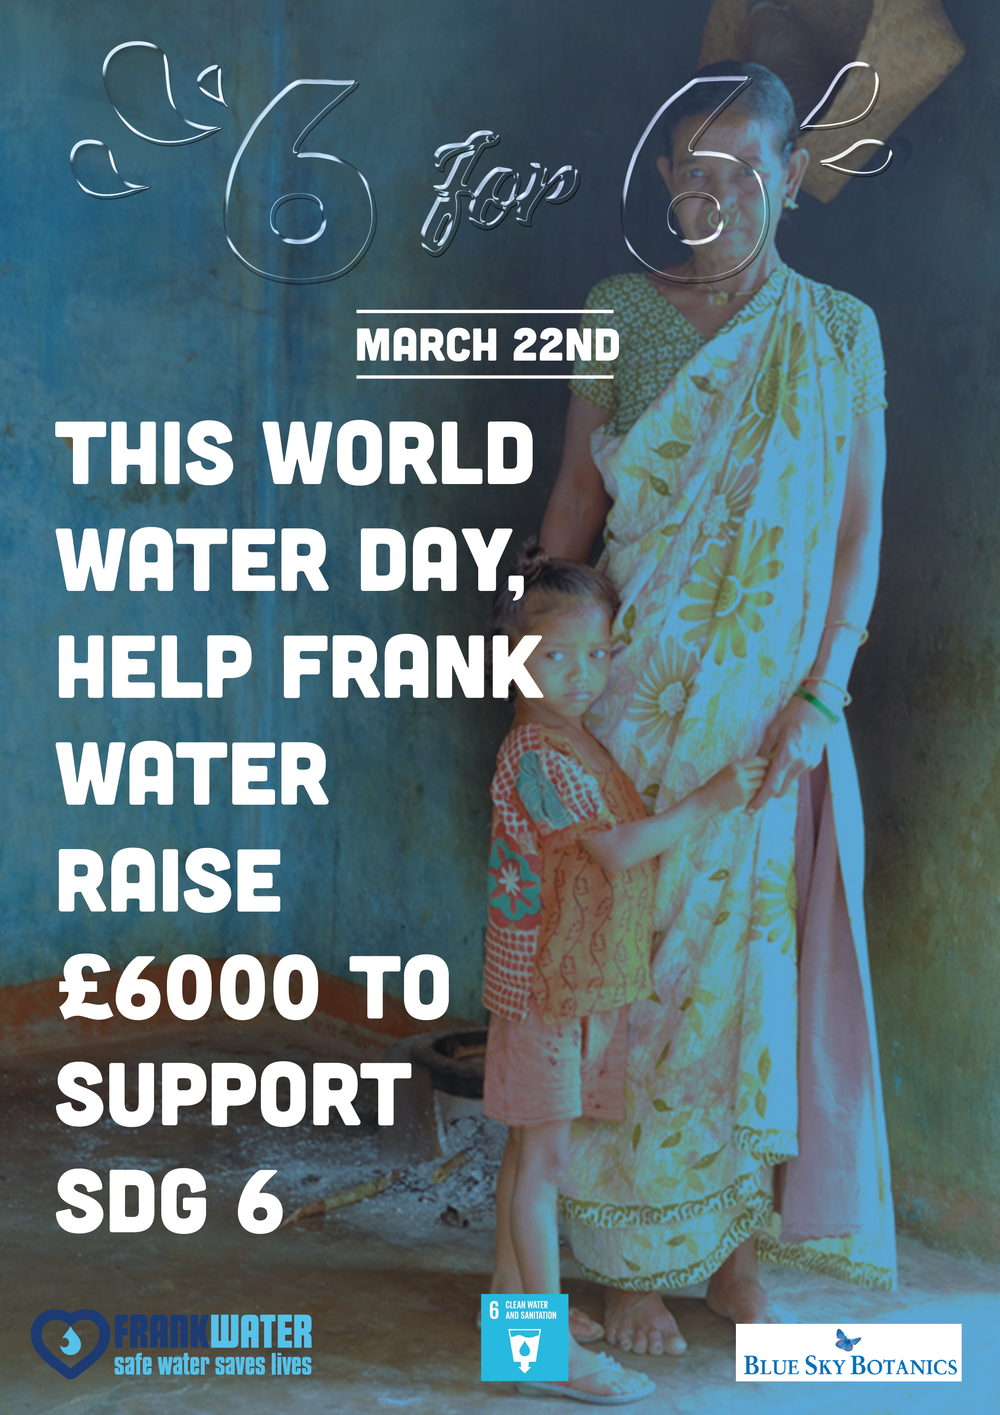 - THANK YOU!Not only did we reach our target, but we sailed past it! With your support, we raised nearly £7000 for #SDG6 this World Water Day - which includes £2500 of fantastic match-funding from our friends at Blue Sky Botanics. An amazing total.